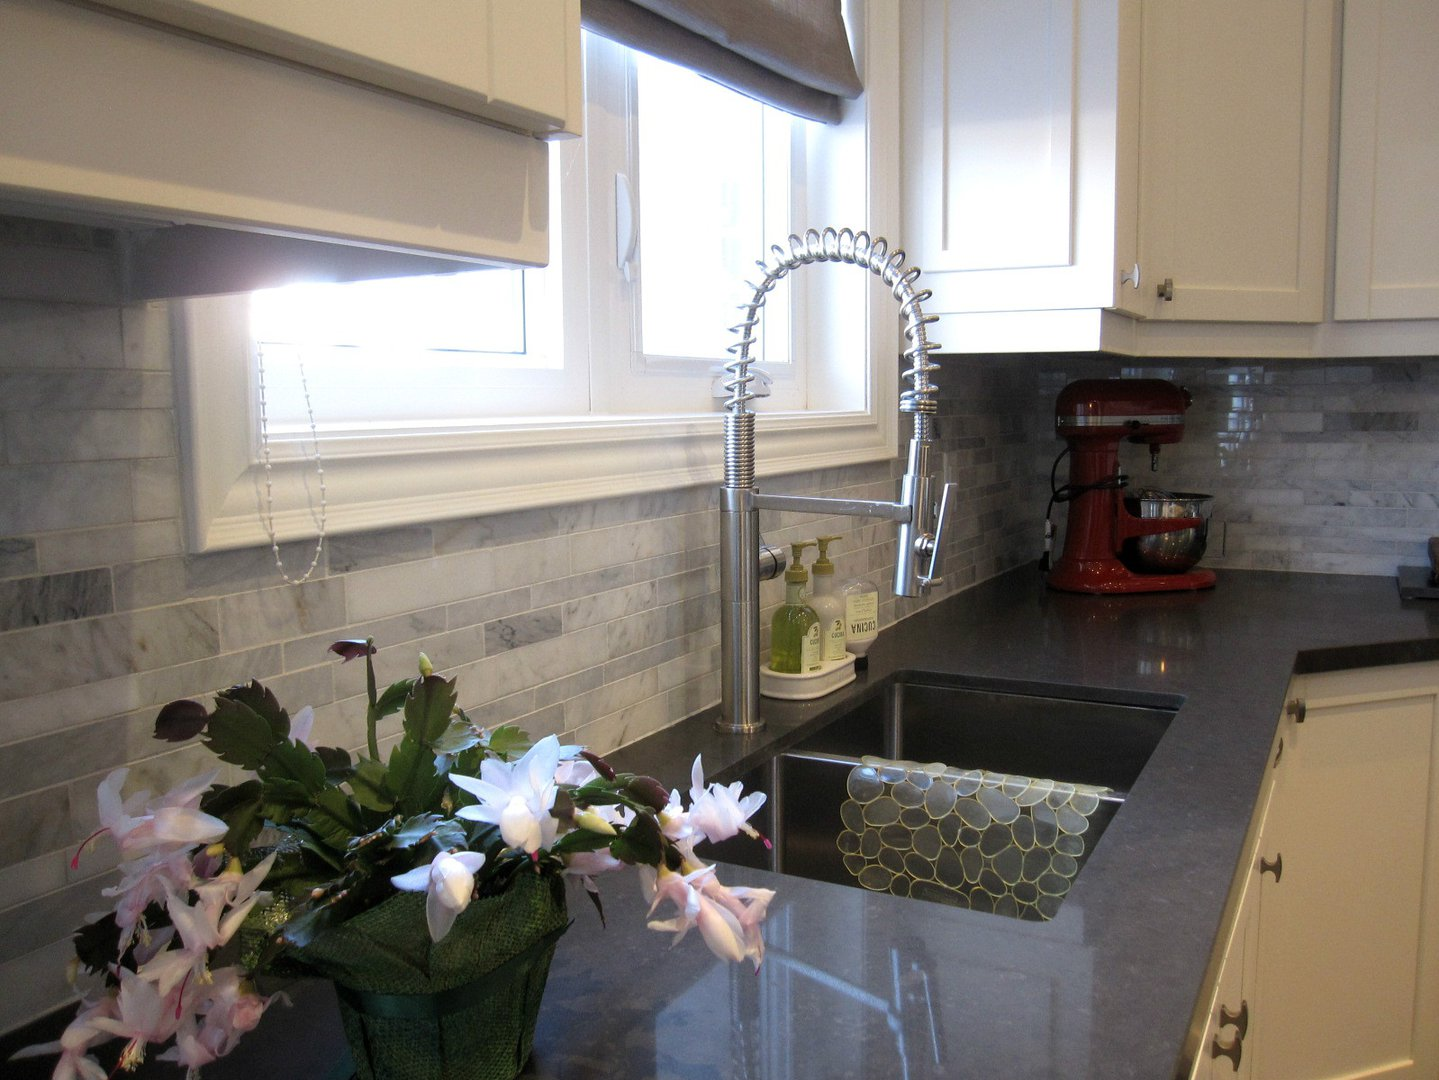 House for rent at 18 Algoma St, Etobicoke, ON. This is the kitchen with natural light.